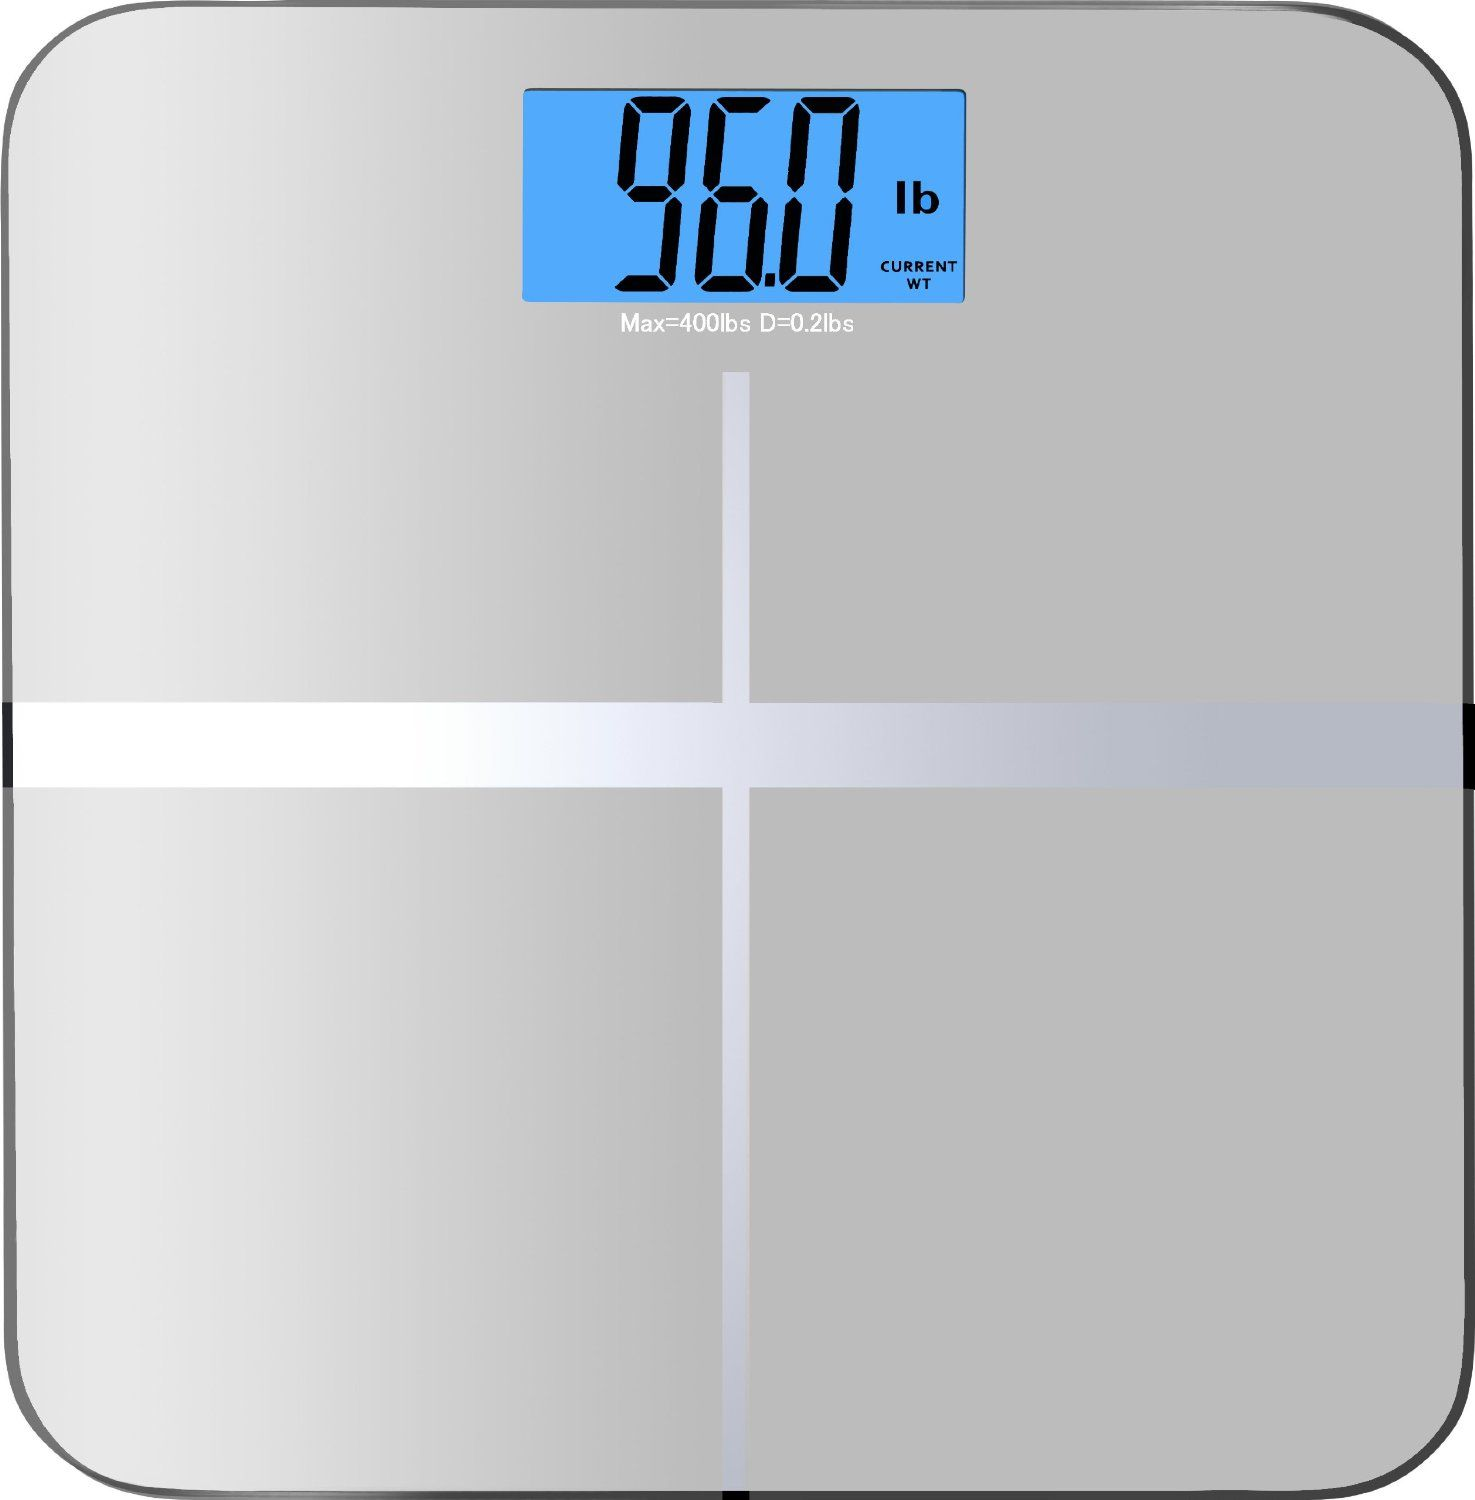 Awesome Top 10 Best Digital Weight Scales In 2016 Reviews